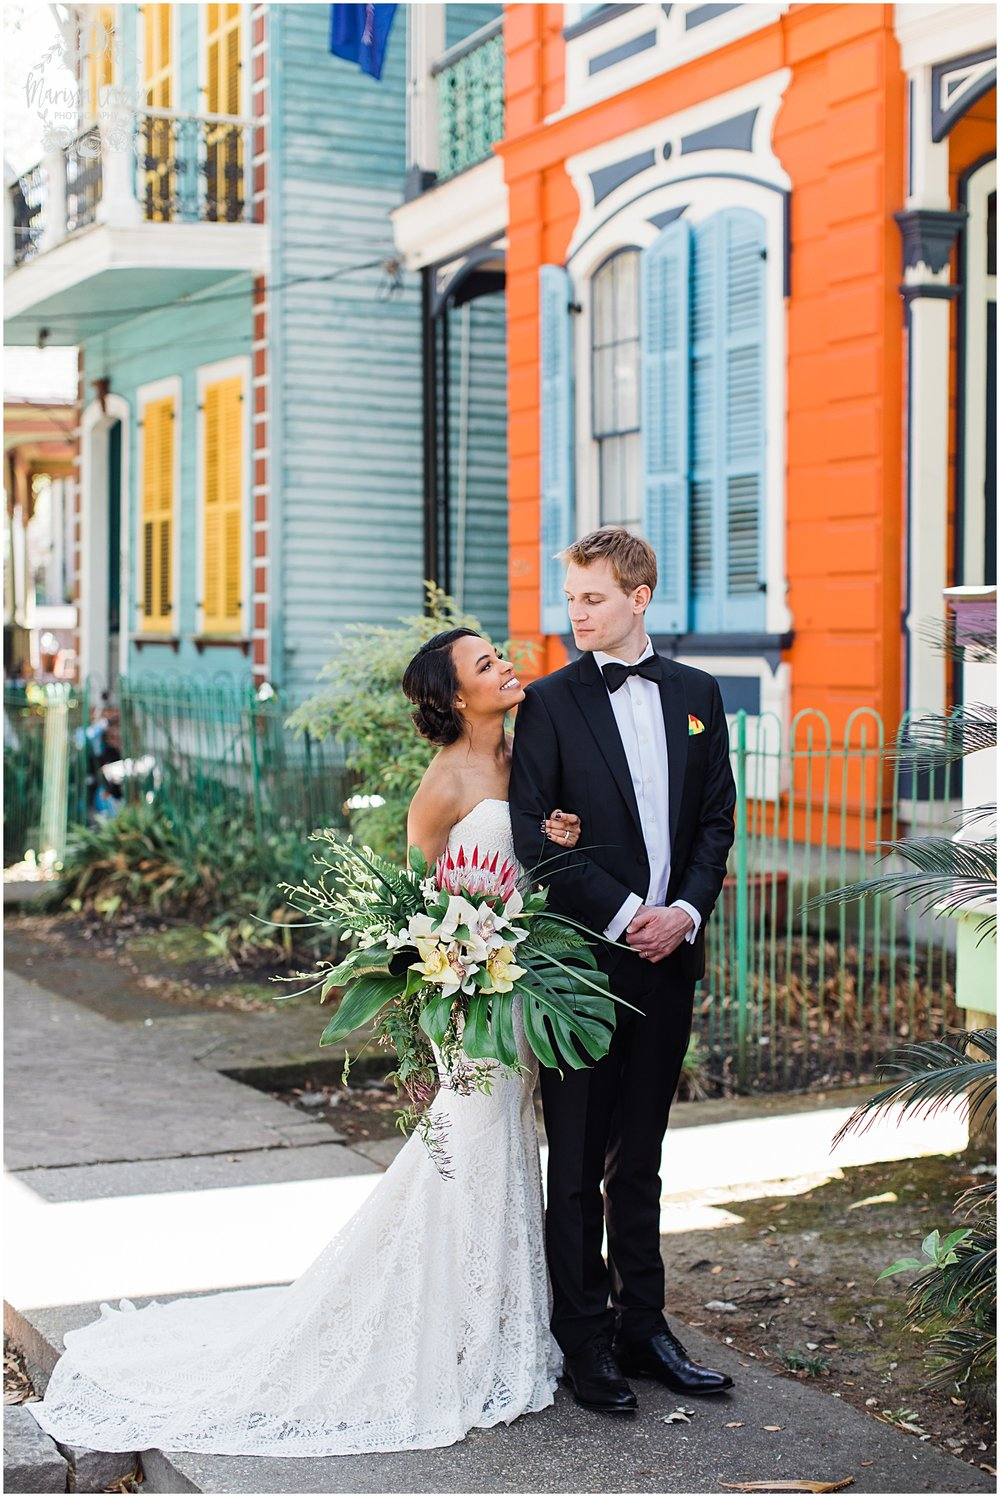 NEW ORLEANS WEDDING | BENACHI HOUSE | SARAH & MICHAEL | MARISSA CRIBBS PHOTOGRAPHY_4417.jpg